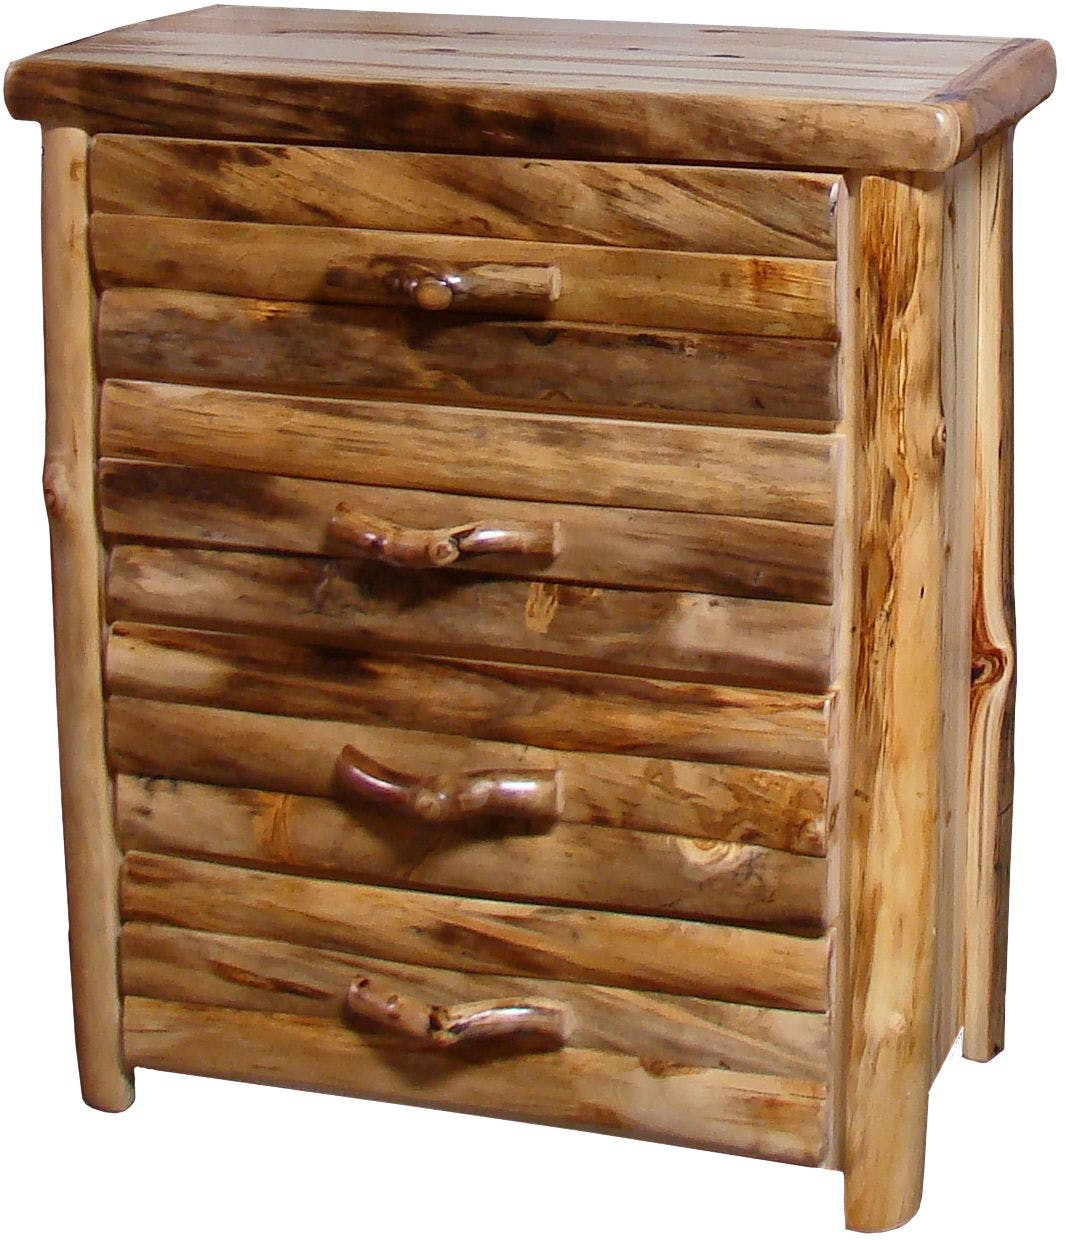 Rustic Log Furniture Bedroom 4 Drawer Chest 4DCL-39-NN - Abernathy's